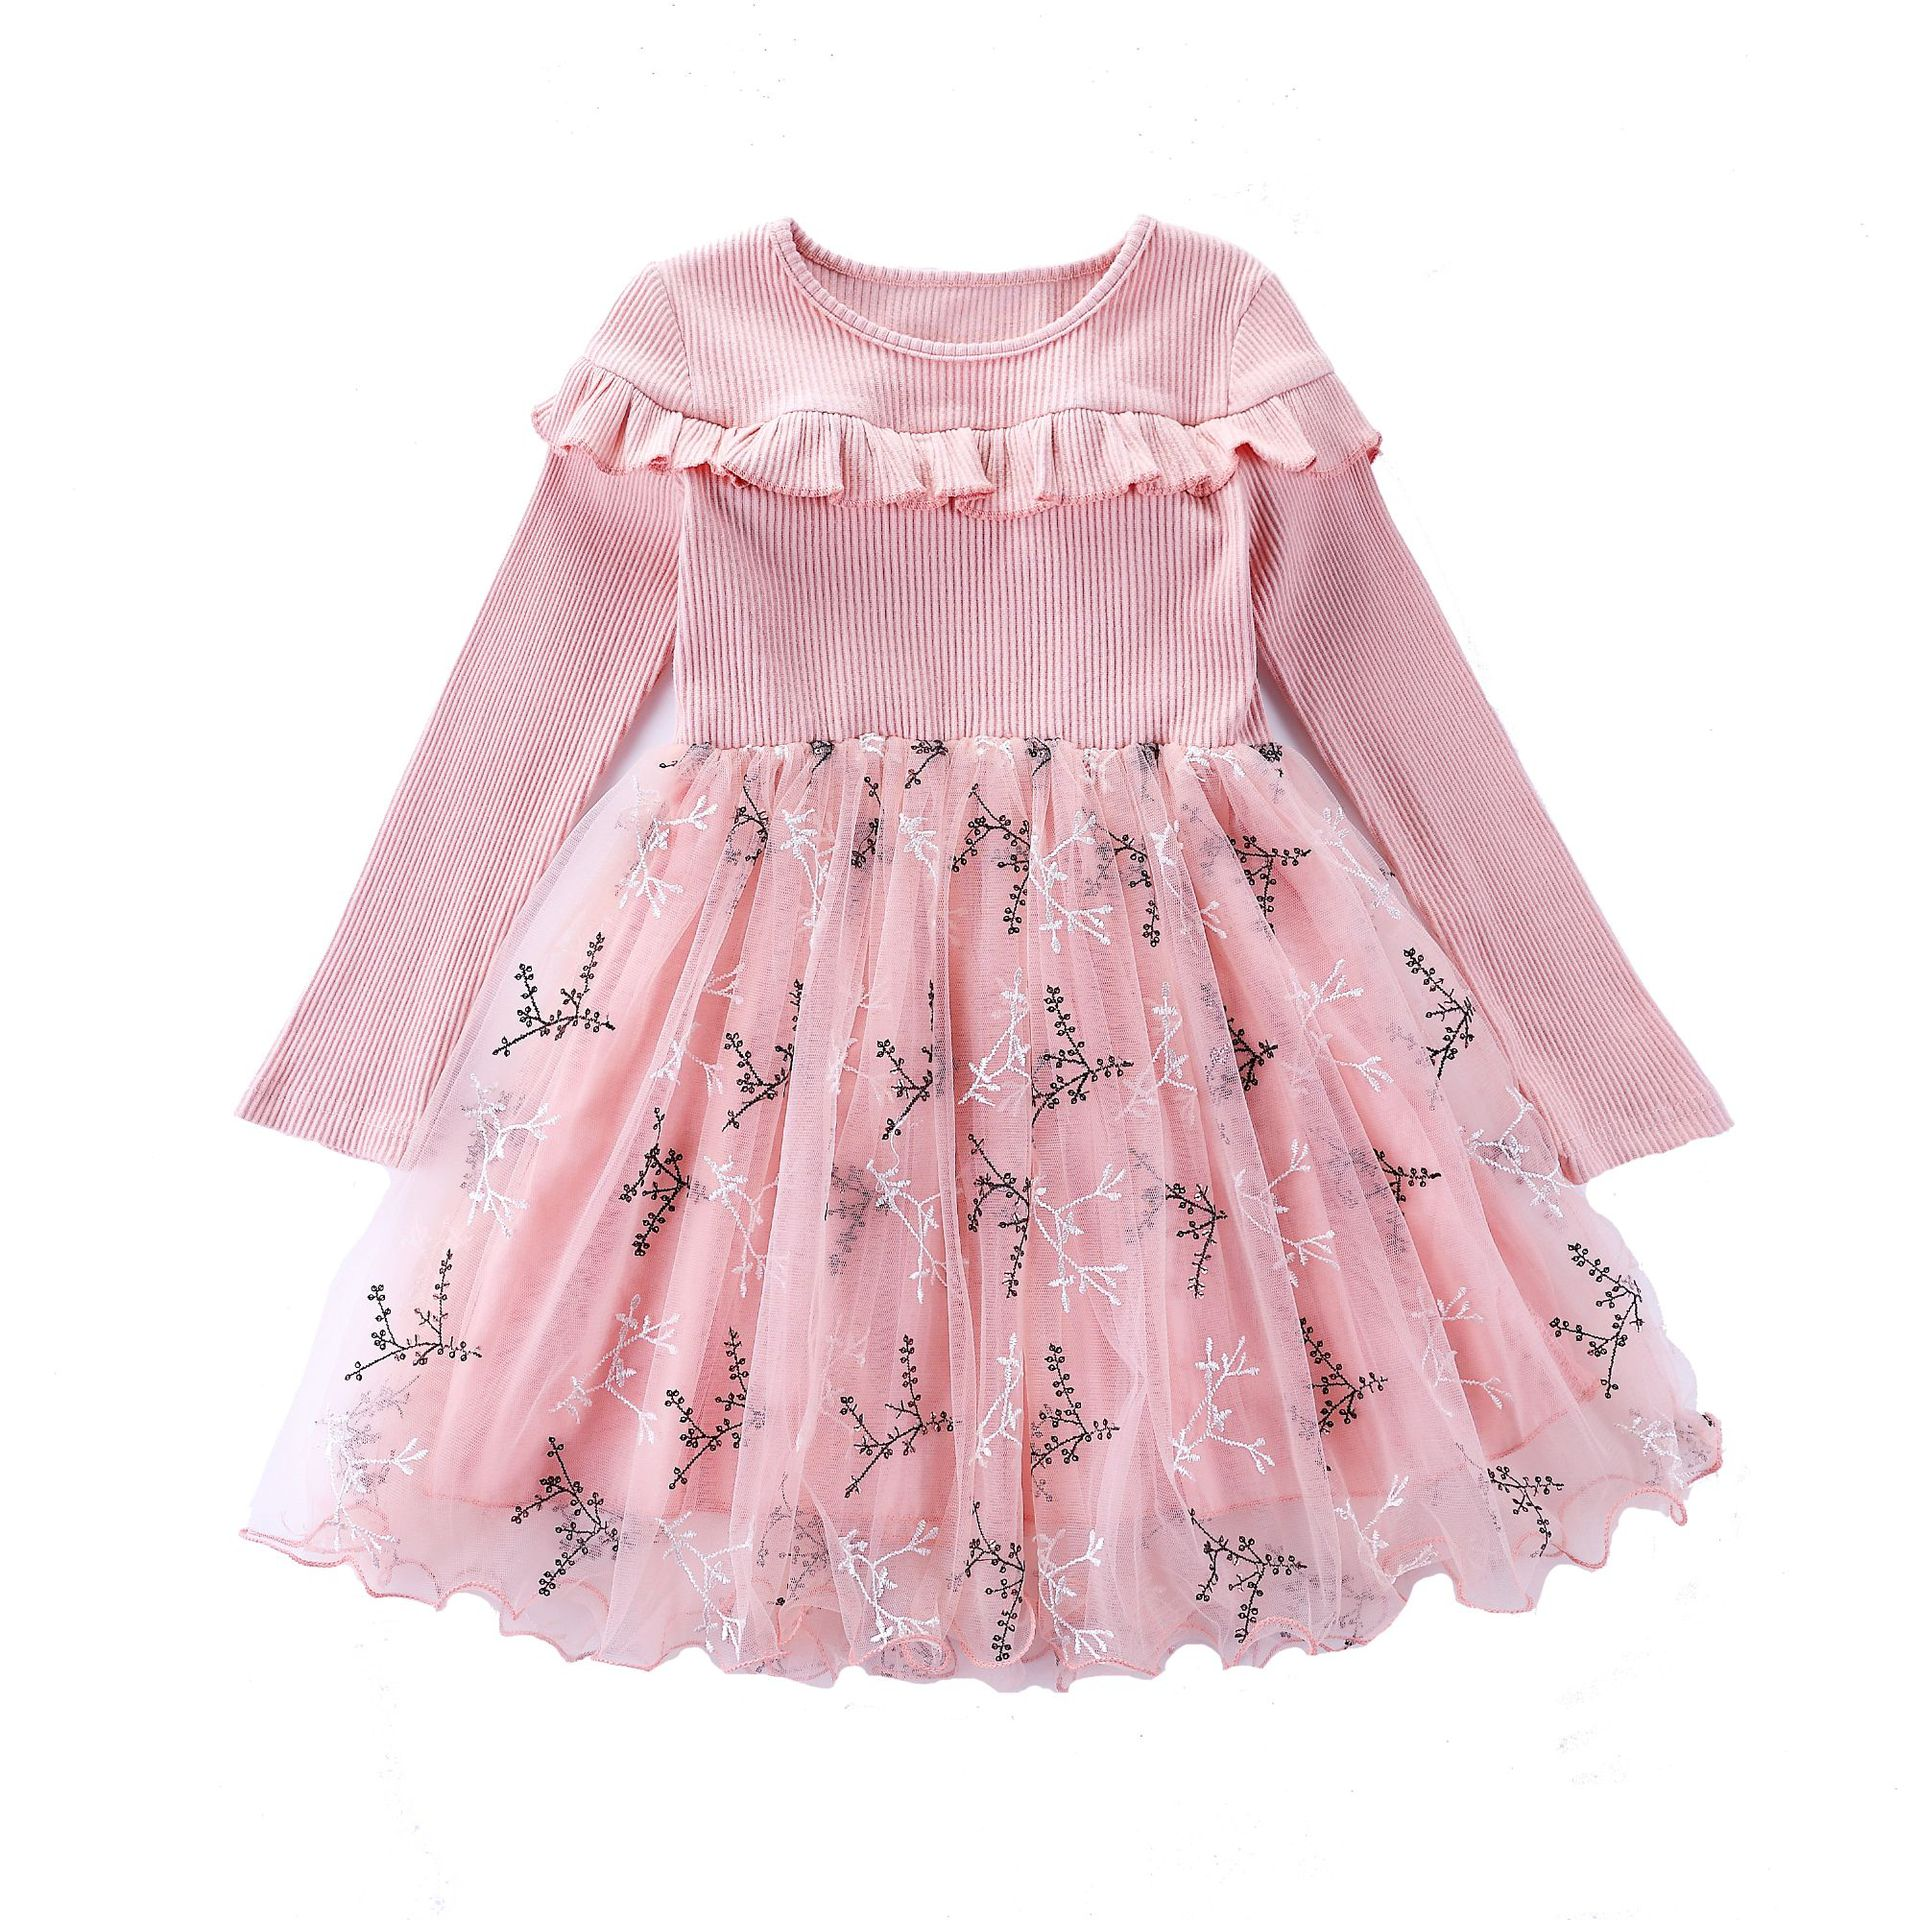 Spring Autumn New Girls Cotton Long-sleeved Knitting Dress Girls Floral Print Baby Girl Princess Dress Christmas Dresses CA133 baby girl clothes pretty girls dress lovely floral print long sleeve flower kids dress princess dresses spring autumn 2 colors